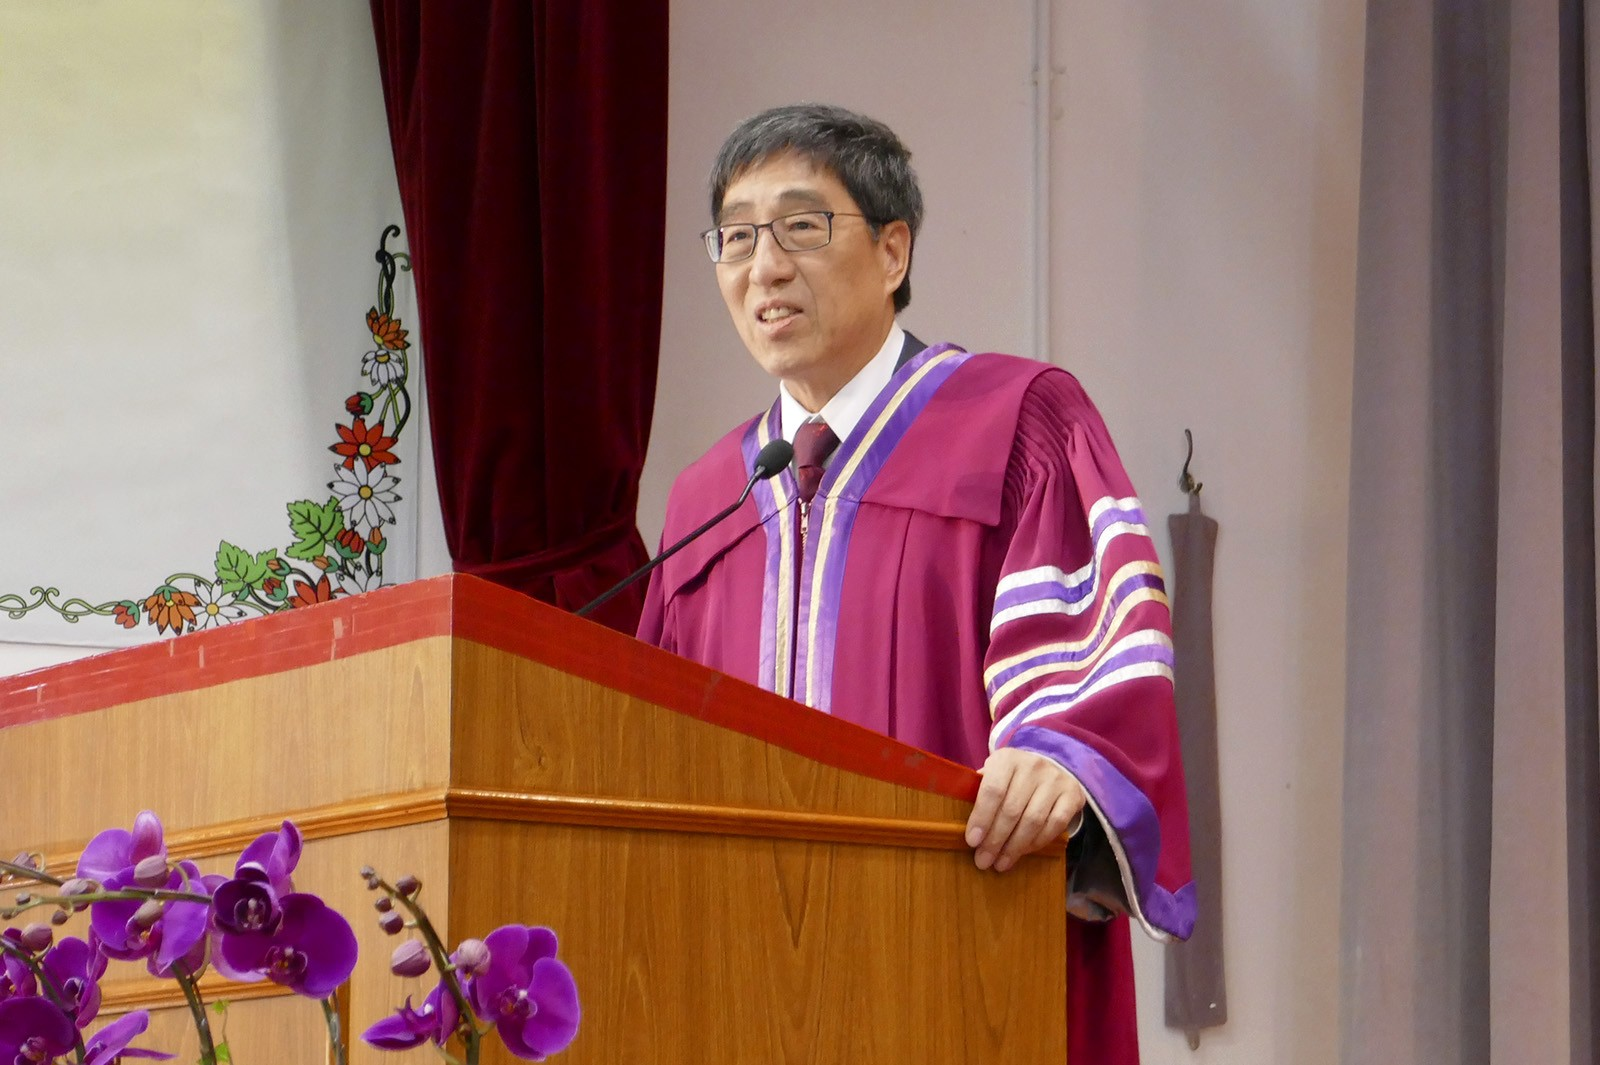 Professor Kuo delivers an address during speech day at a local secondary school.